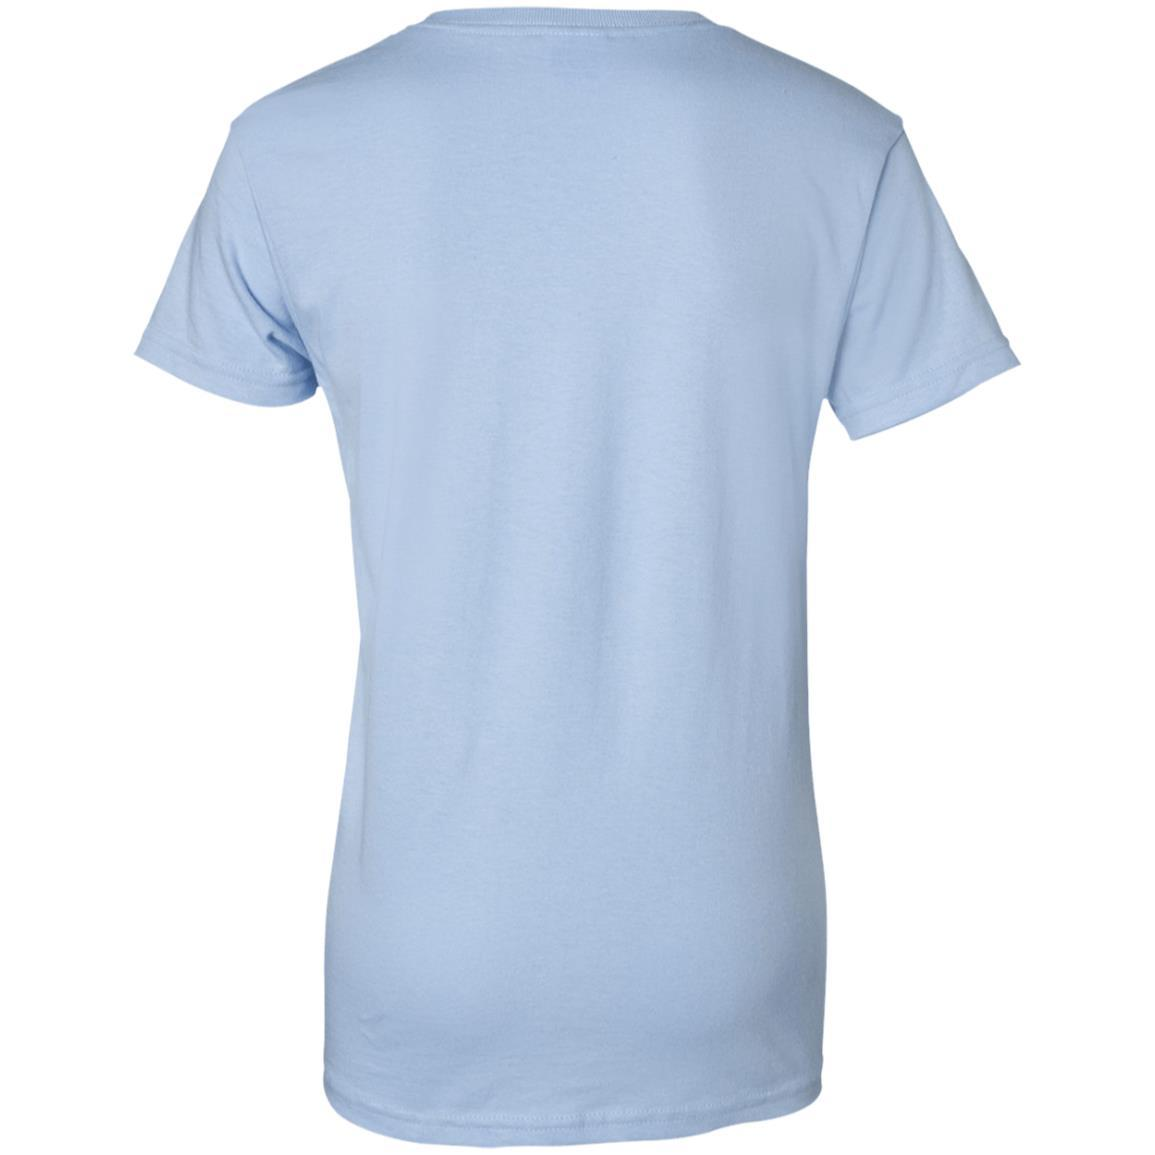 Gildan Ladies' 100% Cotton T-Shirt